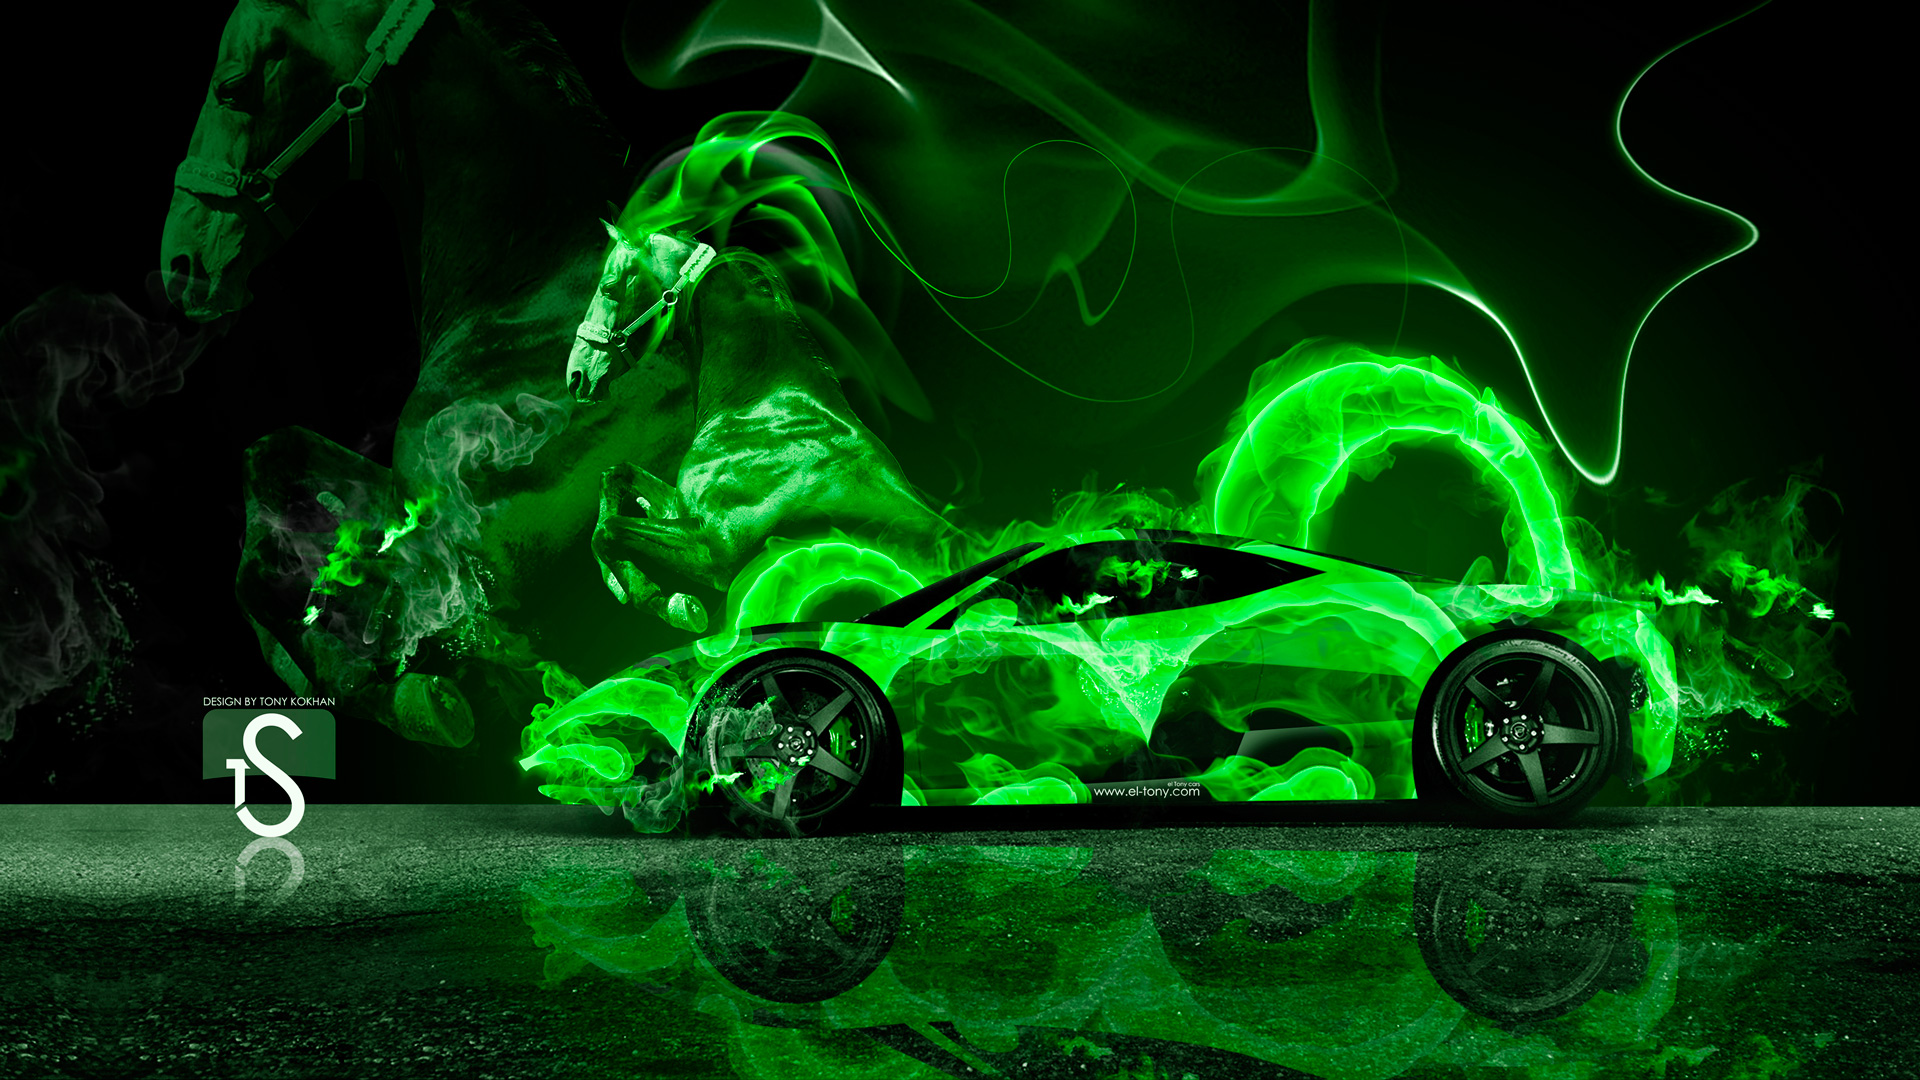 wallpaper green ferrari cars - photo #15